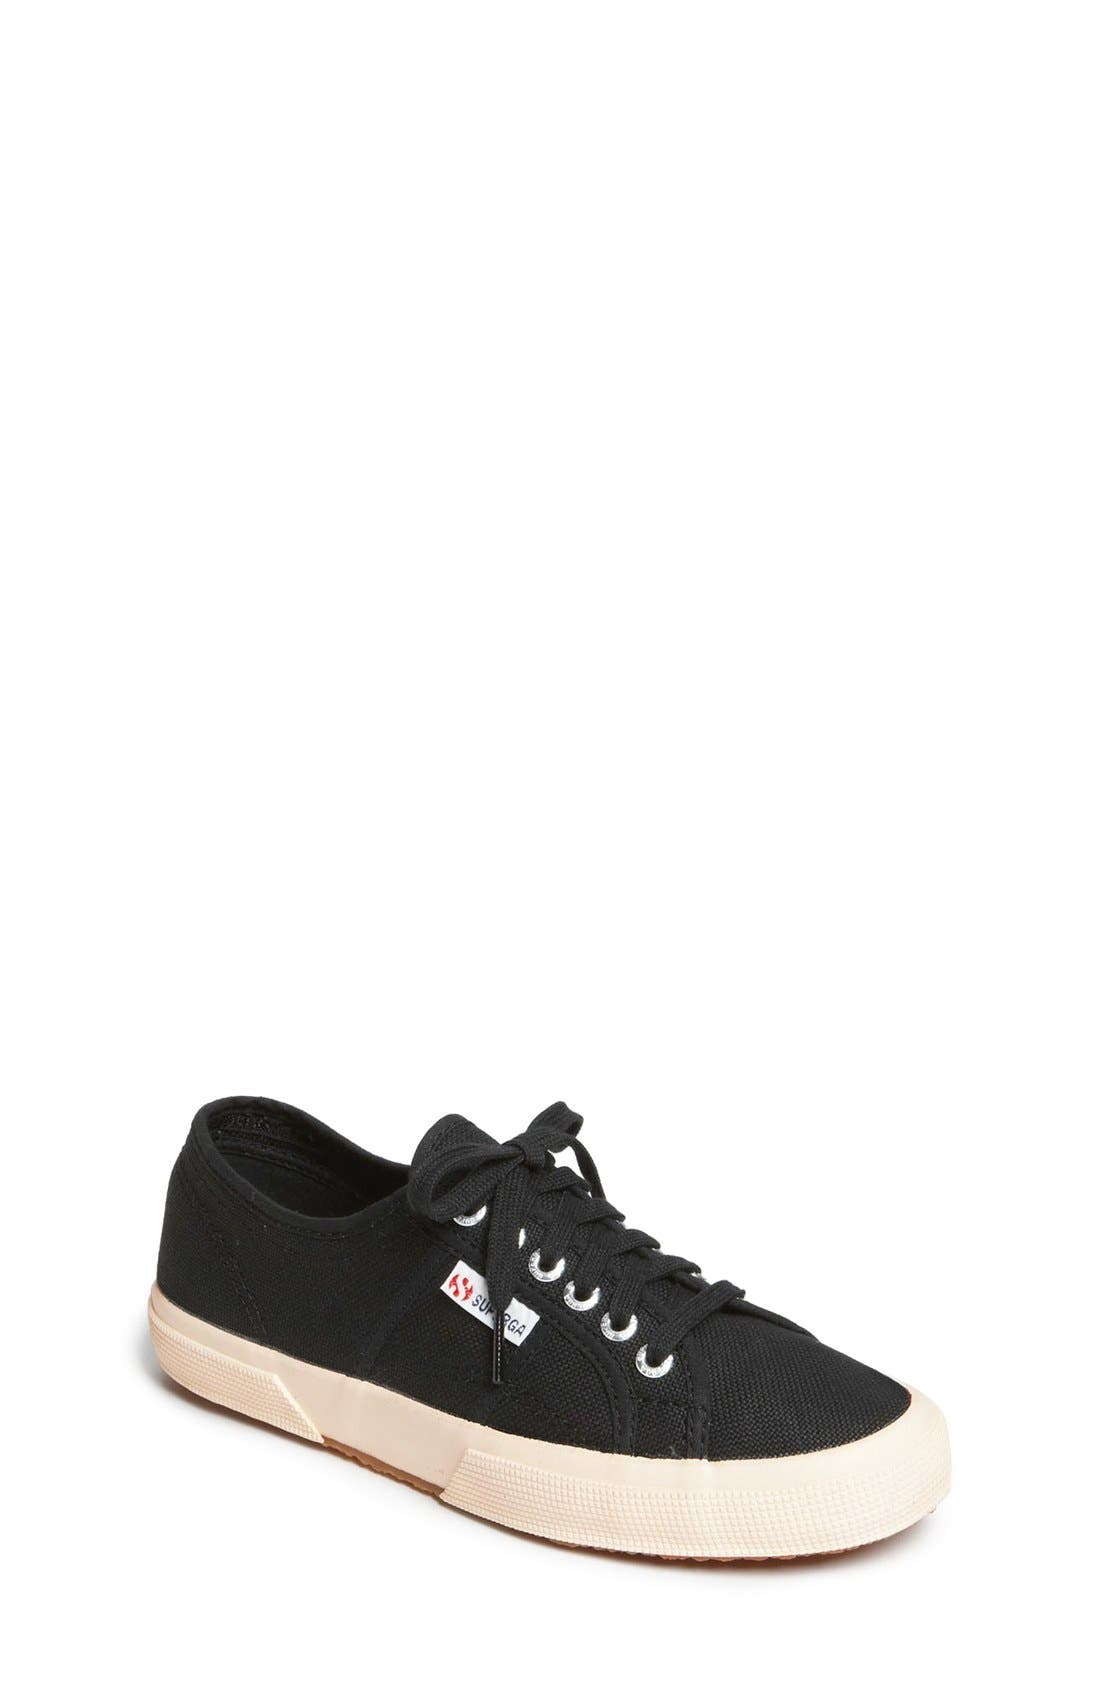 'Cotu' Sneaker,                         Main,                         color, BLACK CANVAS